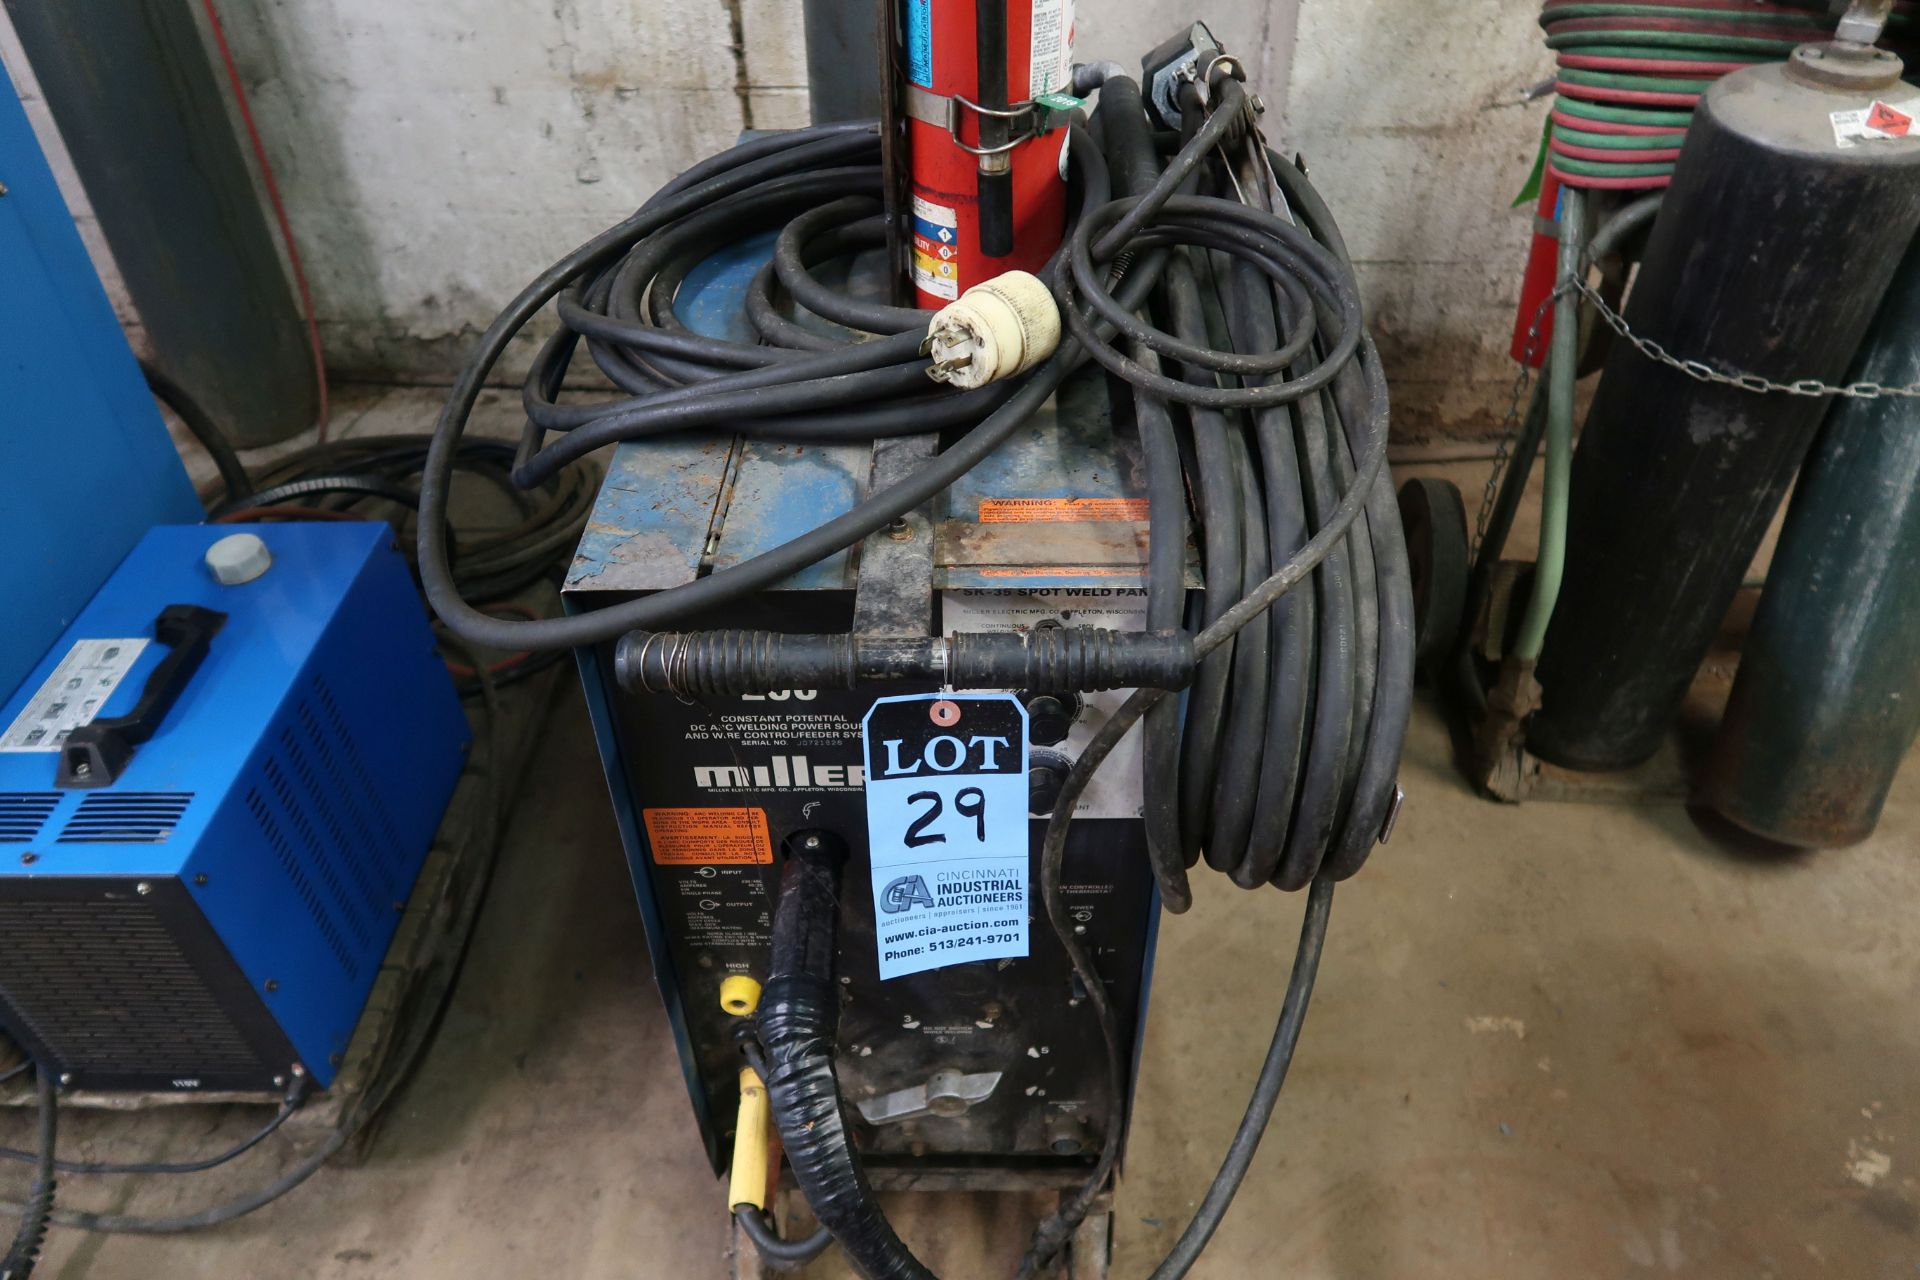 200 AMP MILLER MODEL MILLERMATIC 200 CONSTANT POTENTIAL DC ARC WELDING POWER SOURCE AND WIRE CONTROL - Image 3 of 5